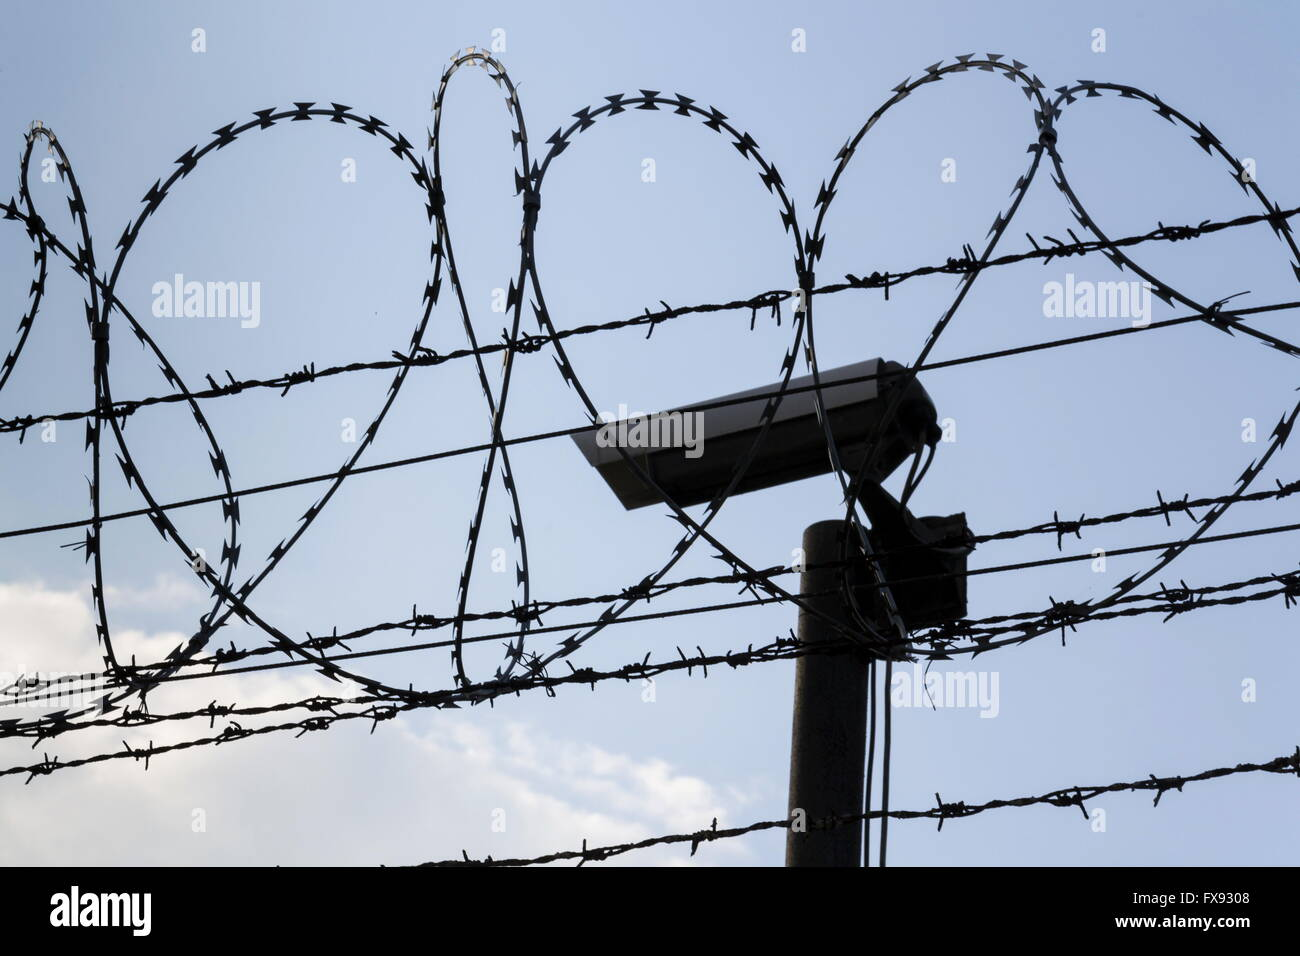 Security camera behind barbed wire fence stretched around